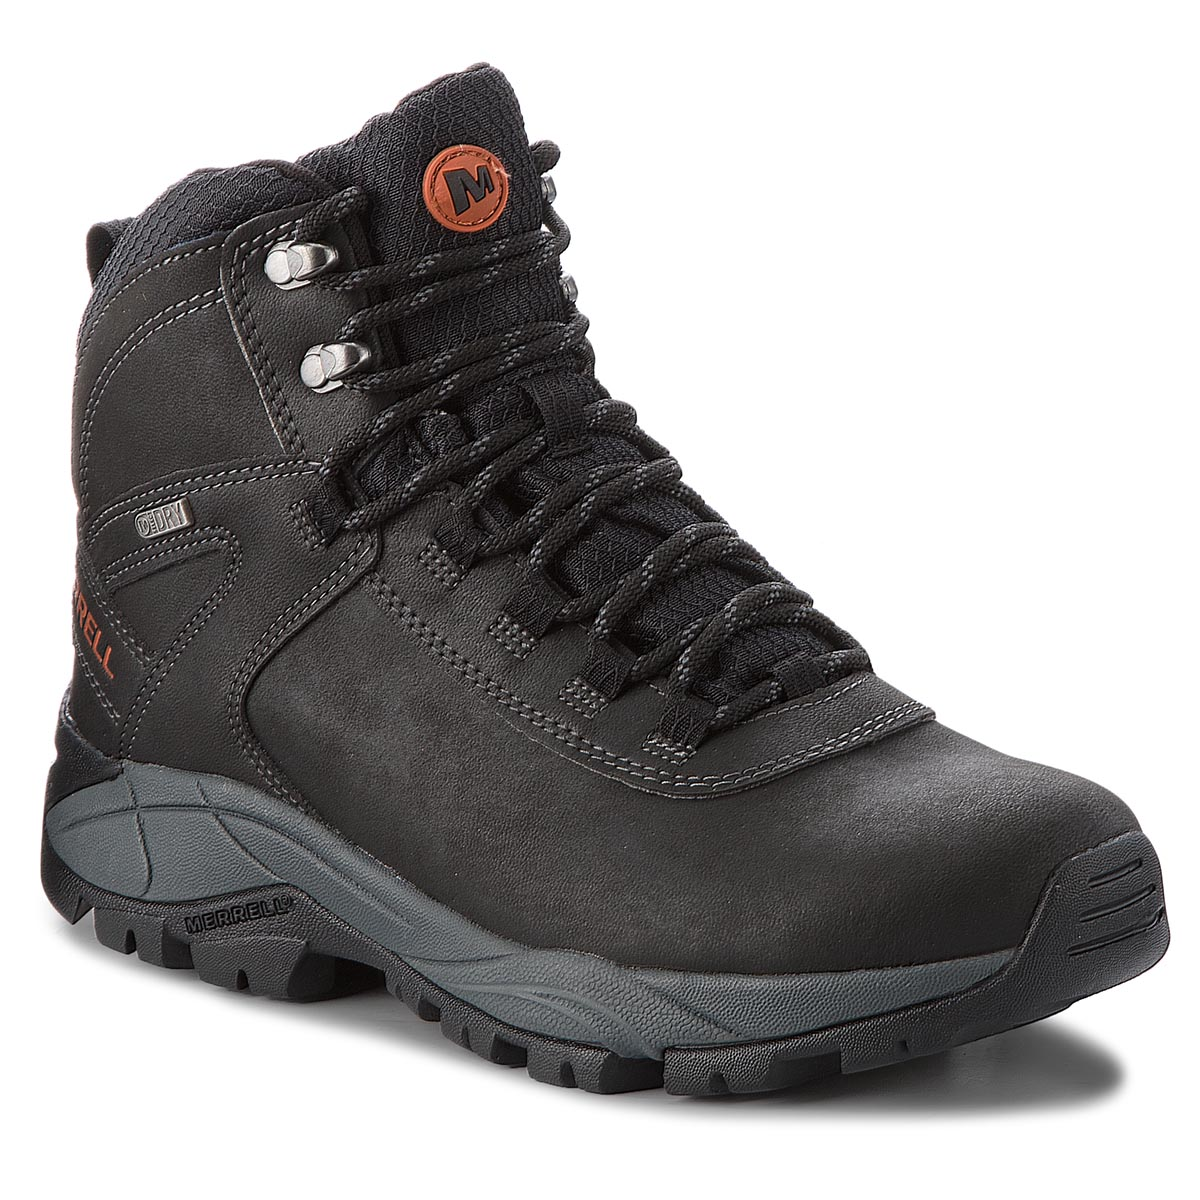 Trekkings Merrell - Vego Mid Ltr Wp J311538c Black imagine epantofi.ro 2021